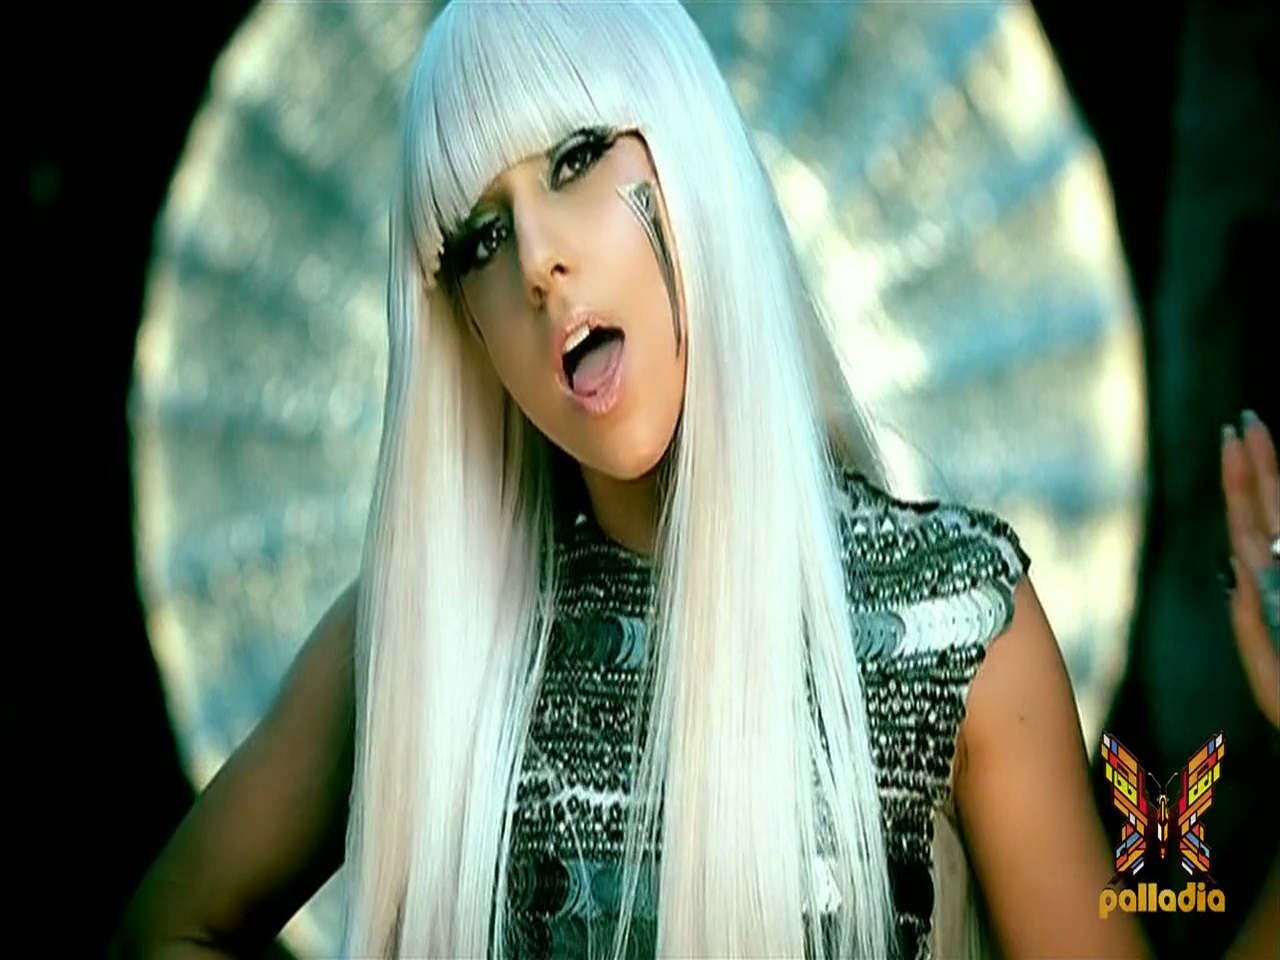 Lady gaga poker face video vevo casino forum no deposit codes